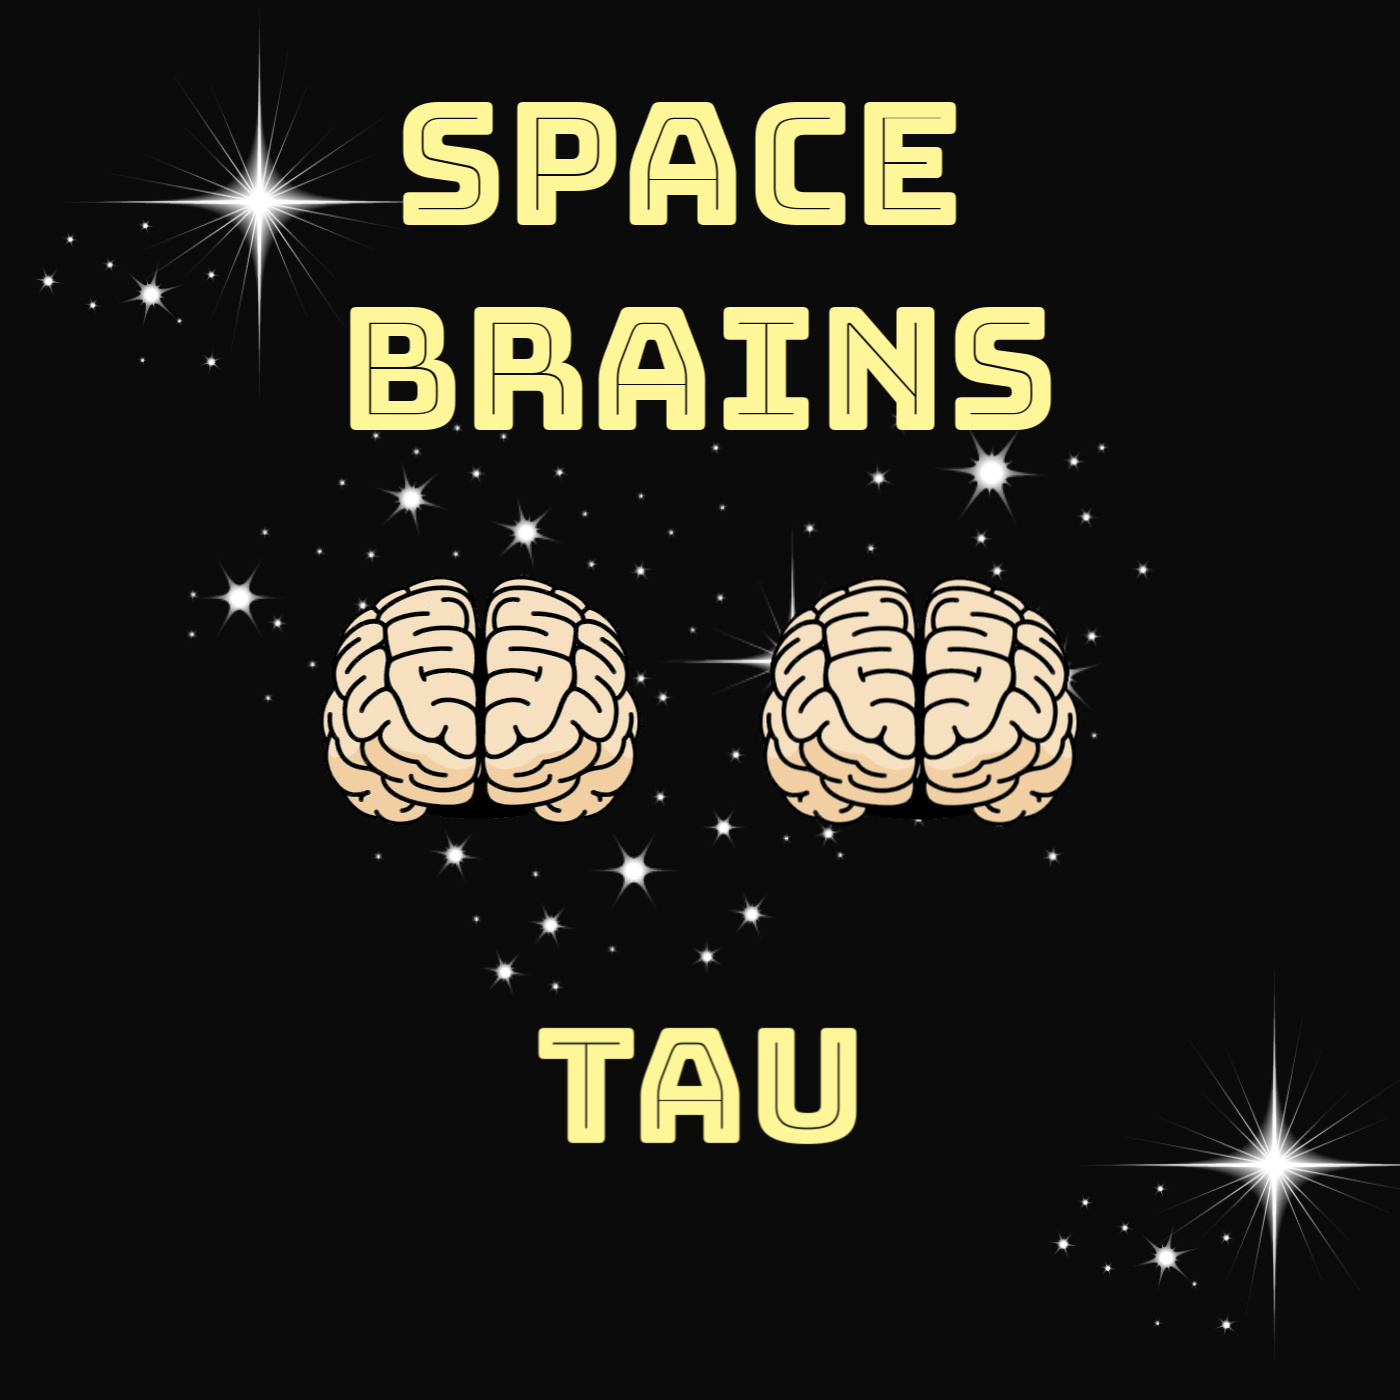 space brains - 12 - Tau